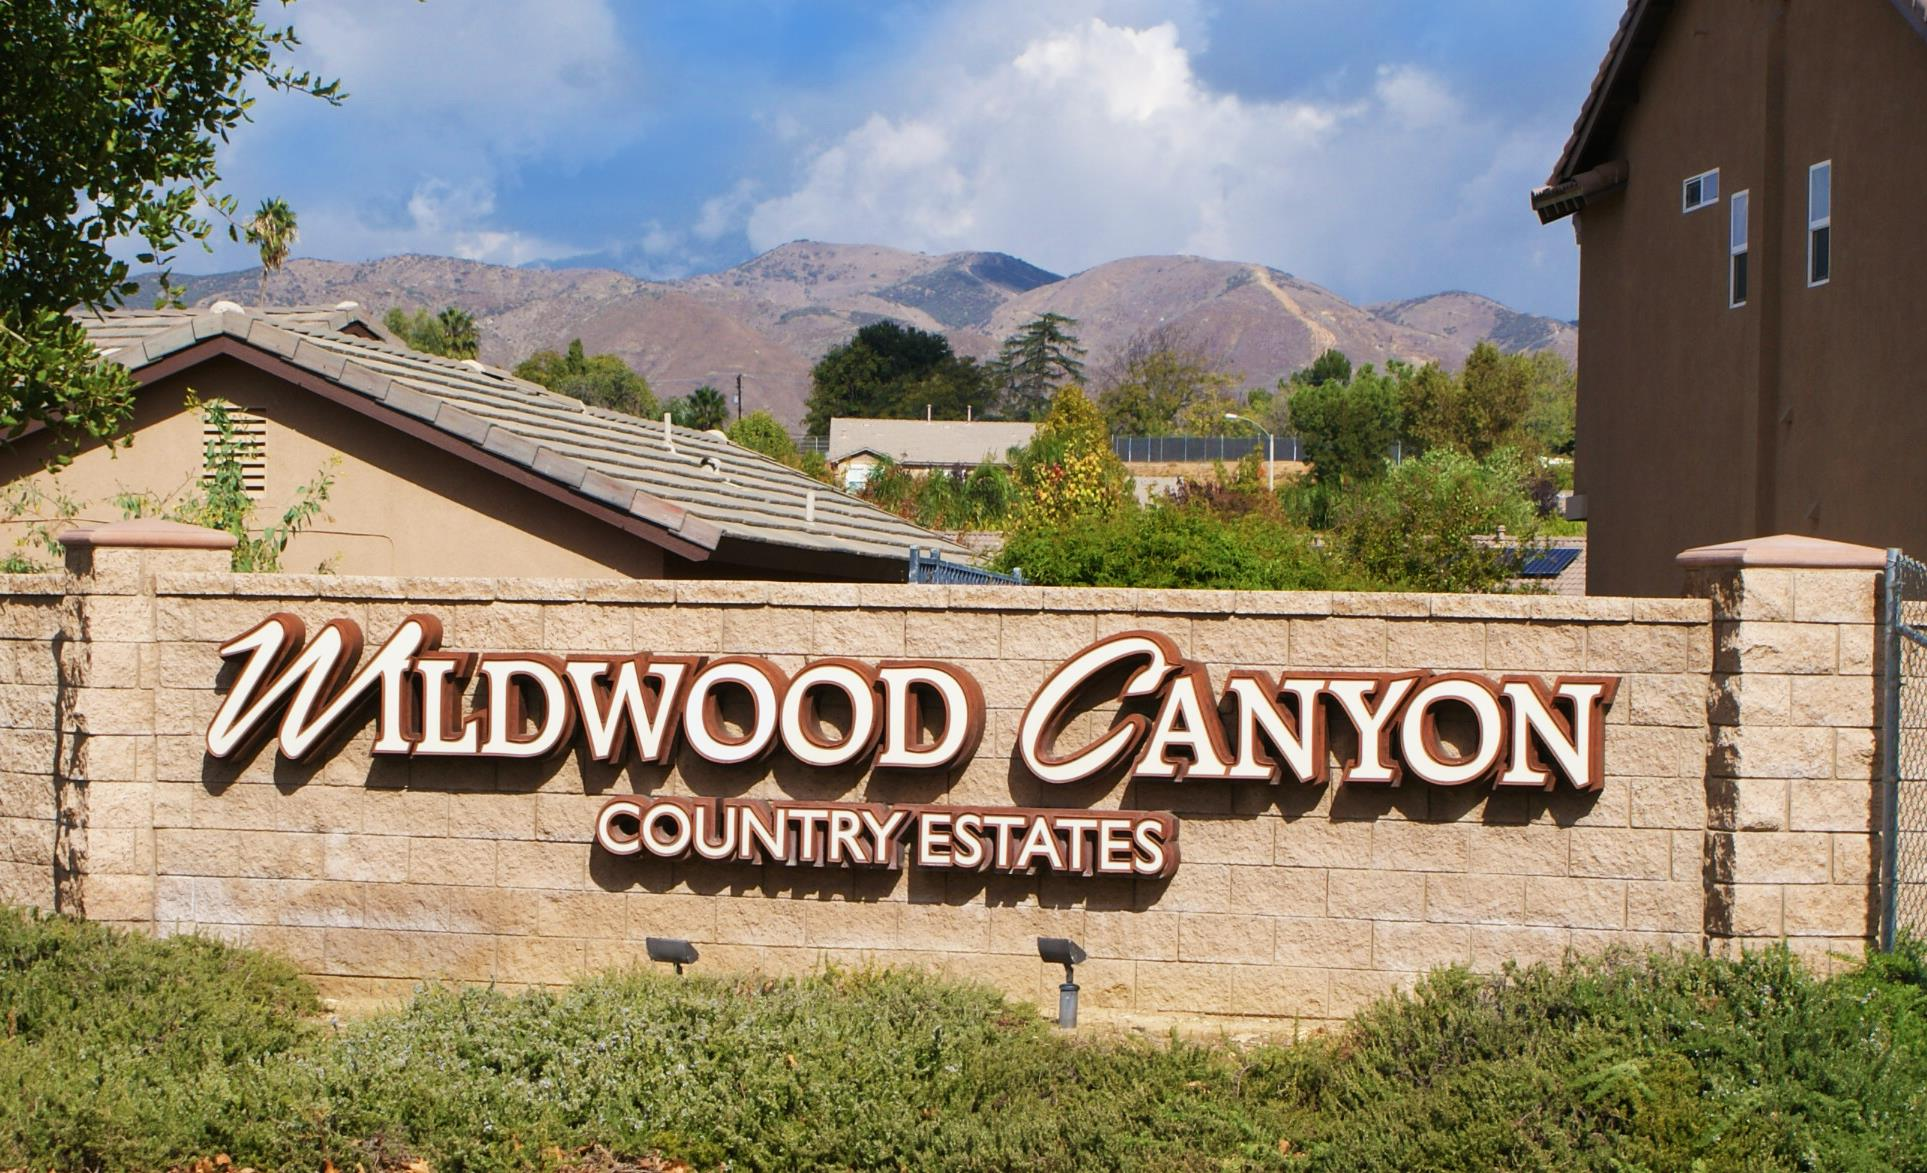 Wildwood Canyon Country Estates